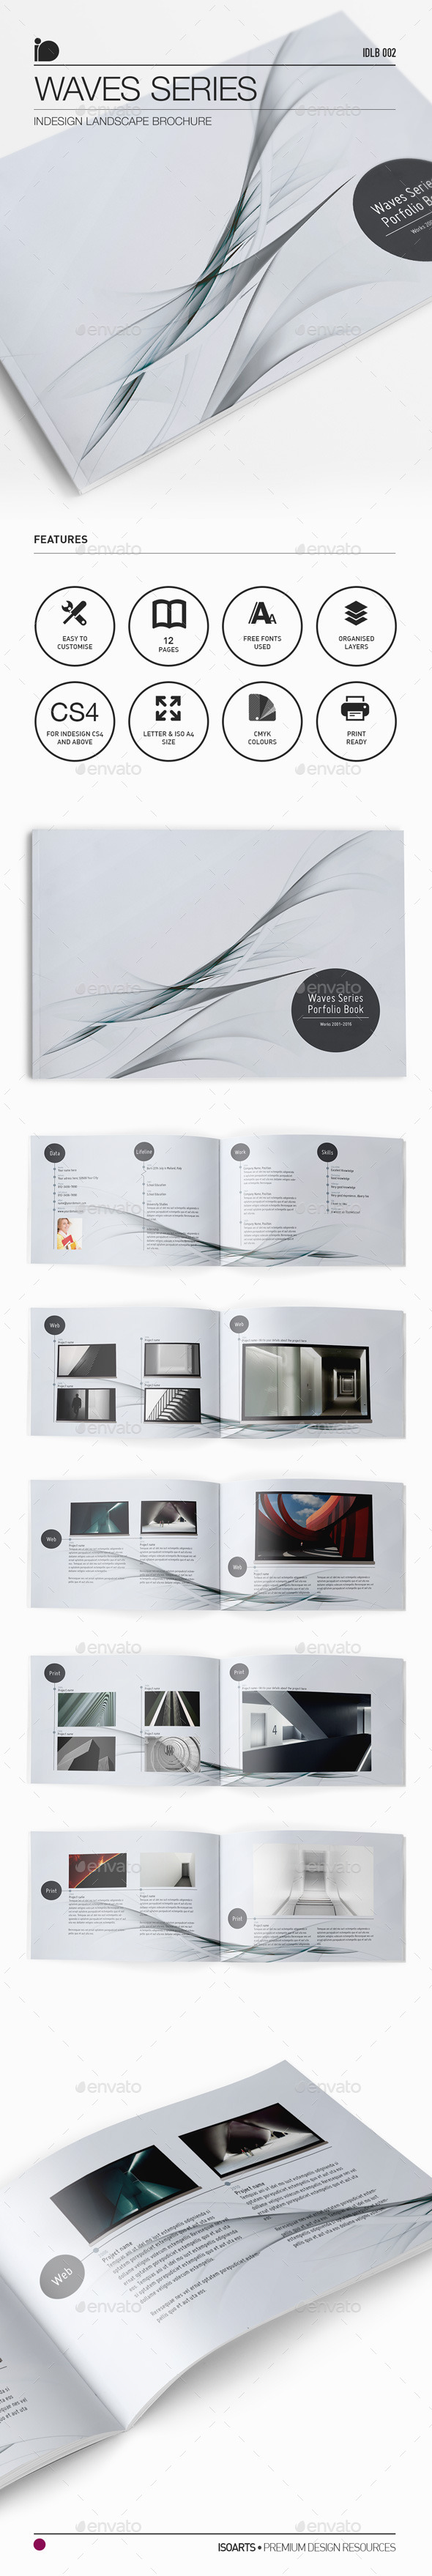 Landscape Brochure • Waves Series - Portfolio Brochures